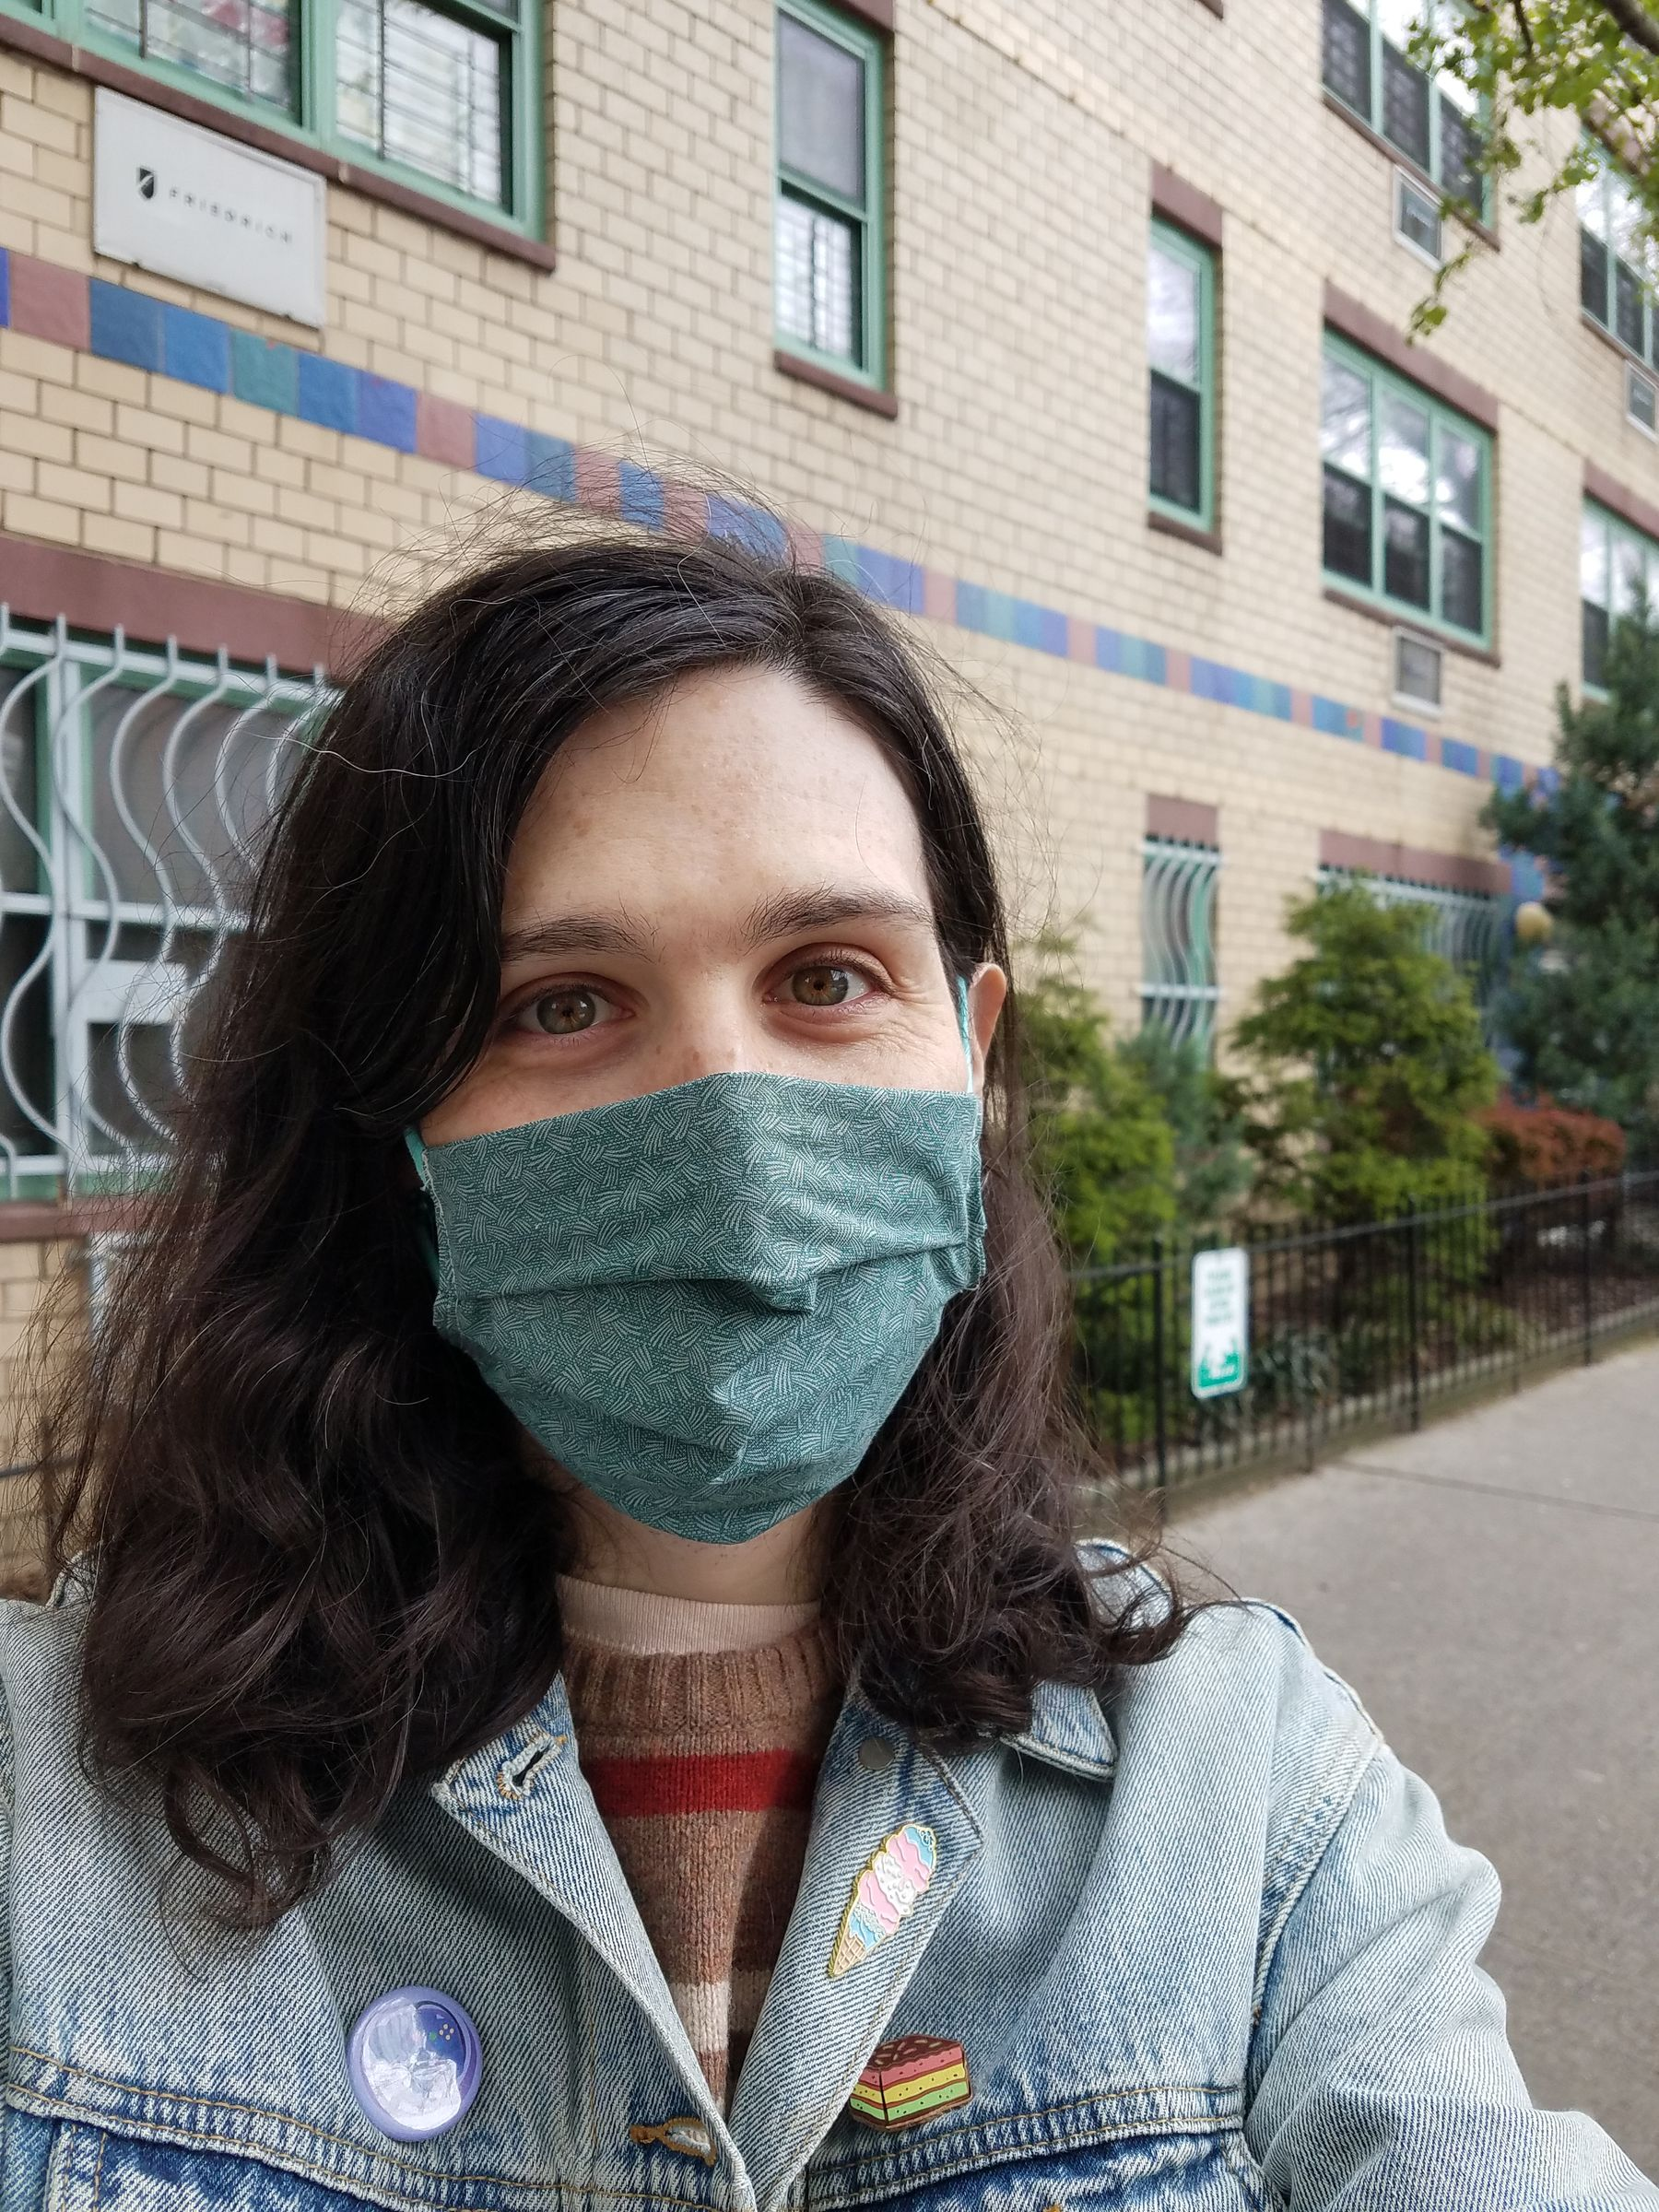 Sidewalk selfie of me, with shoulder length brown hair, wearing a denim jacket and a teal cotton mask.